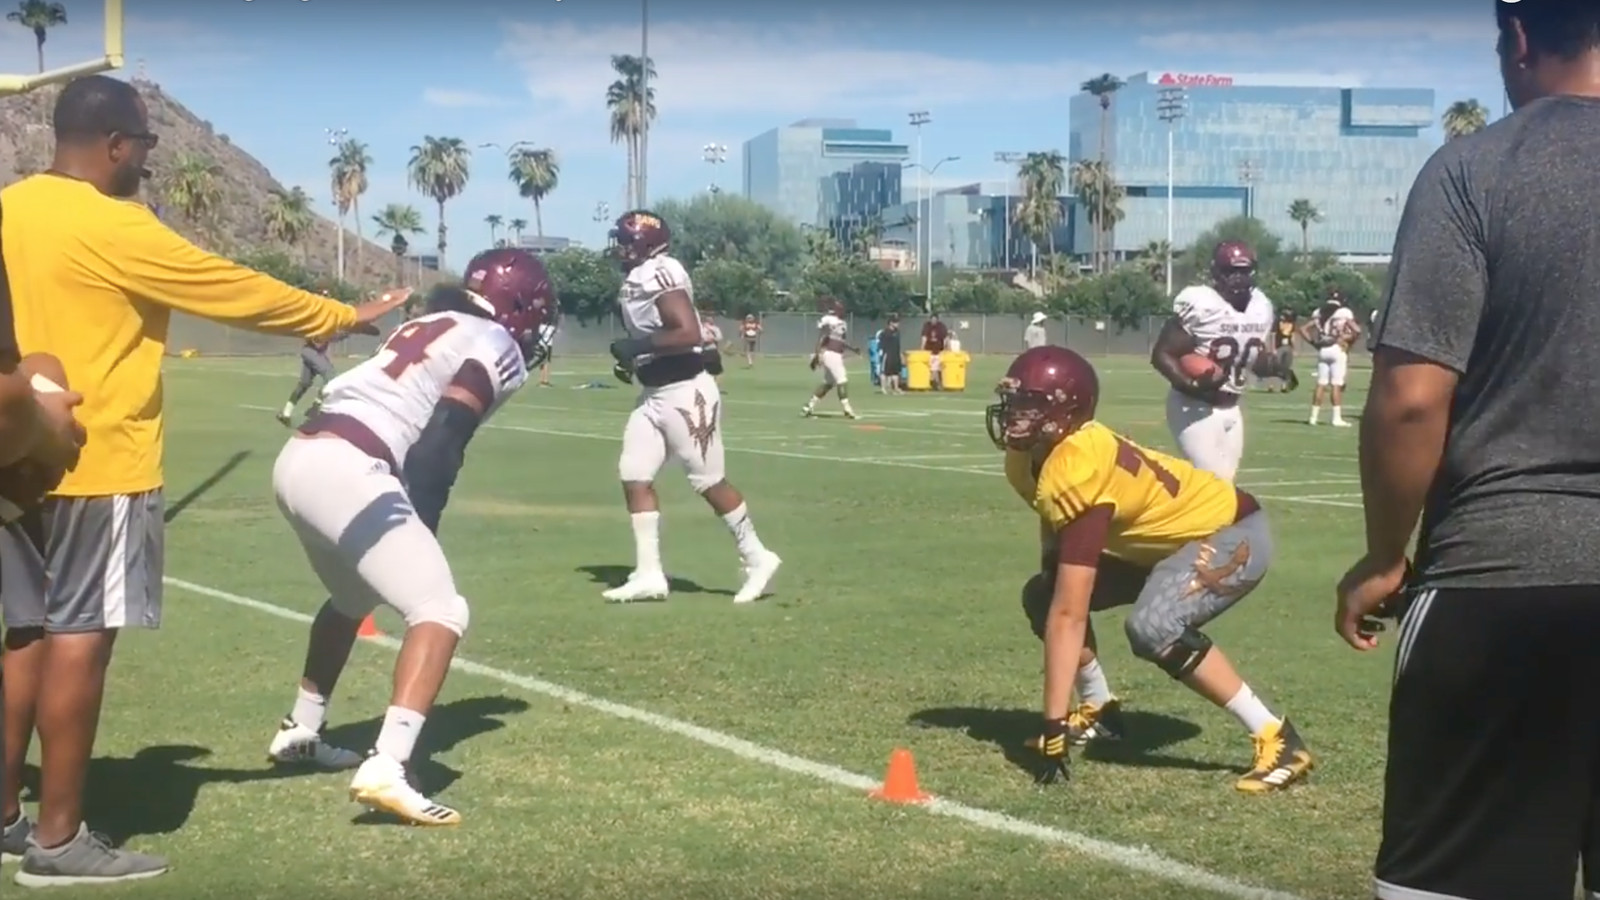 WATCH: ASU Football Highlights From Sunday's Practice